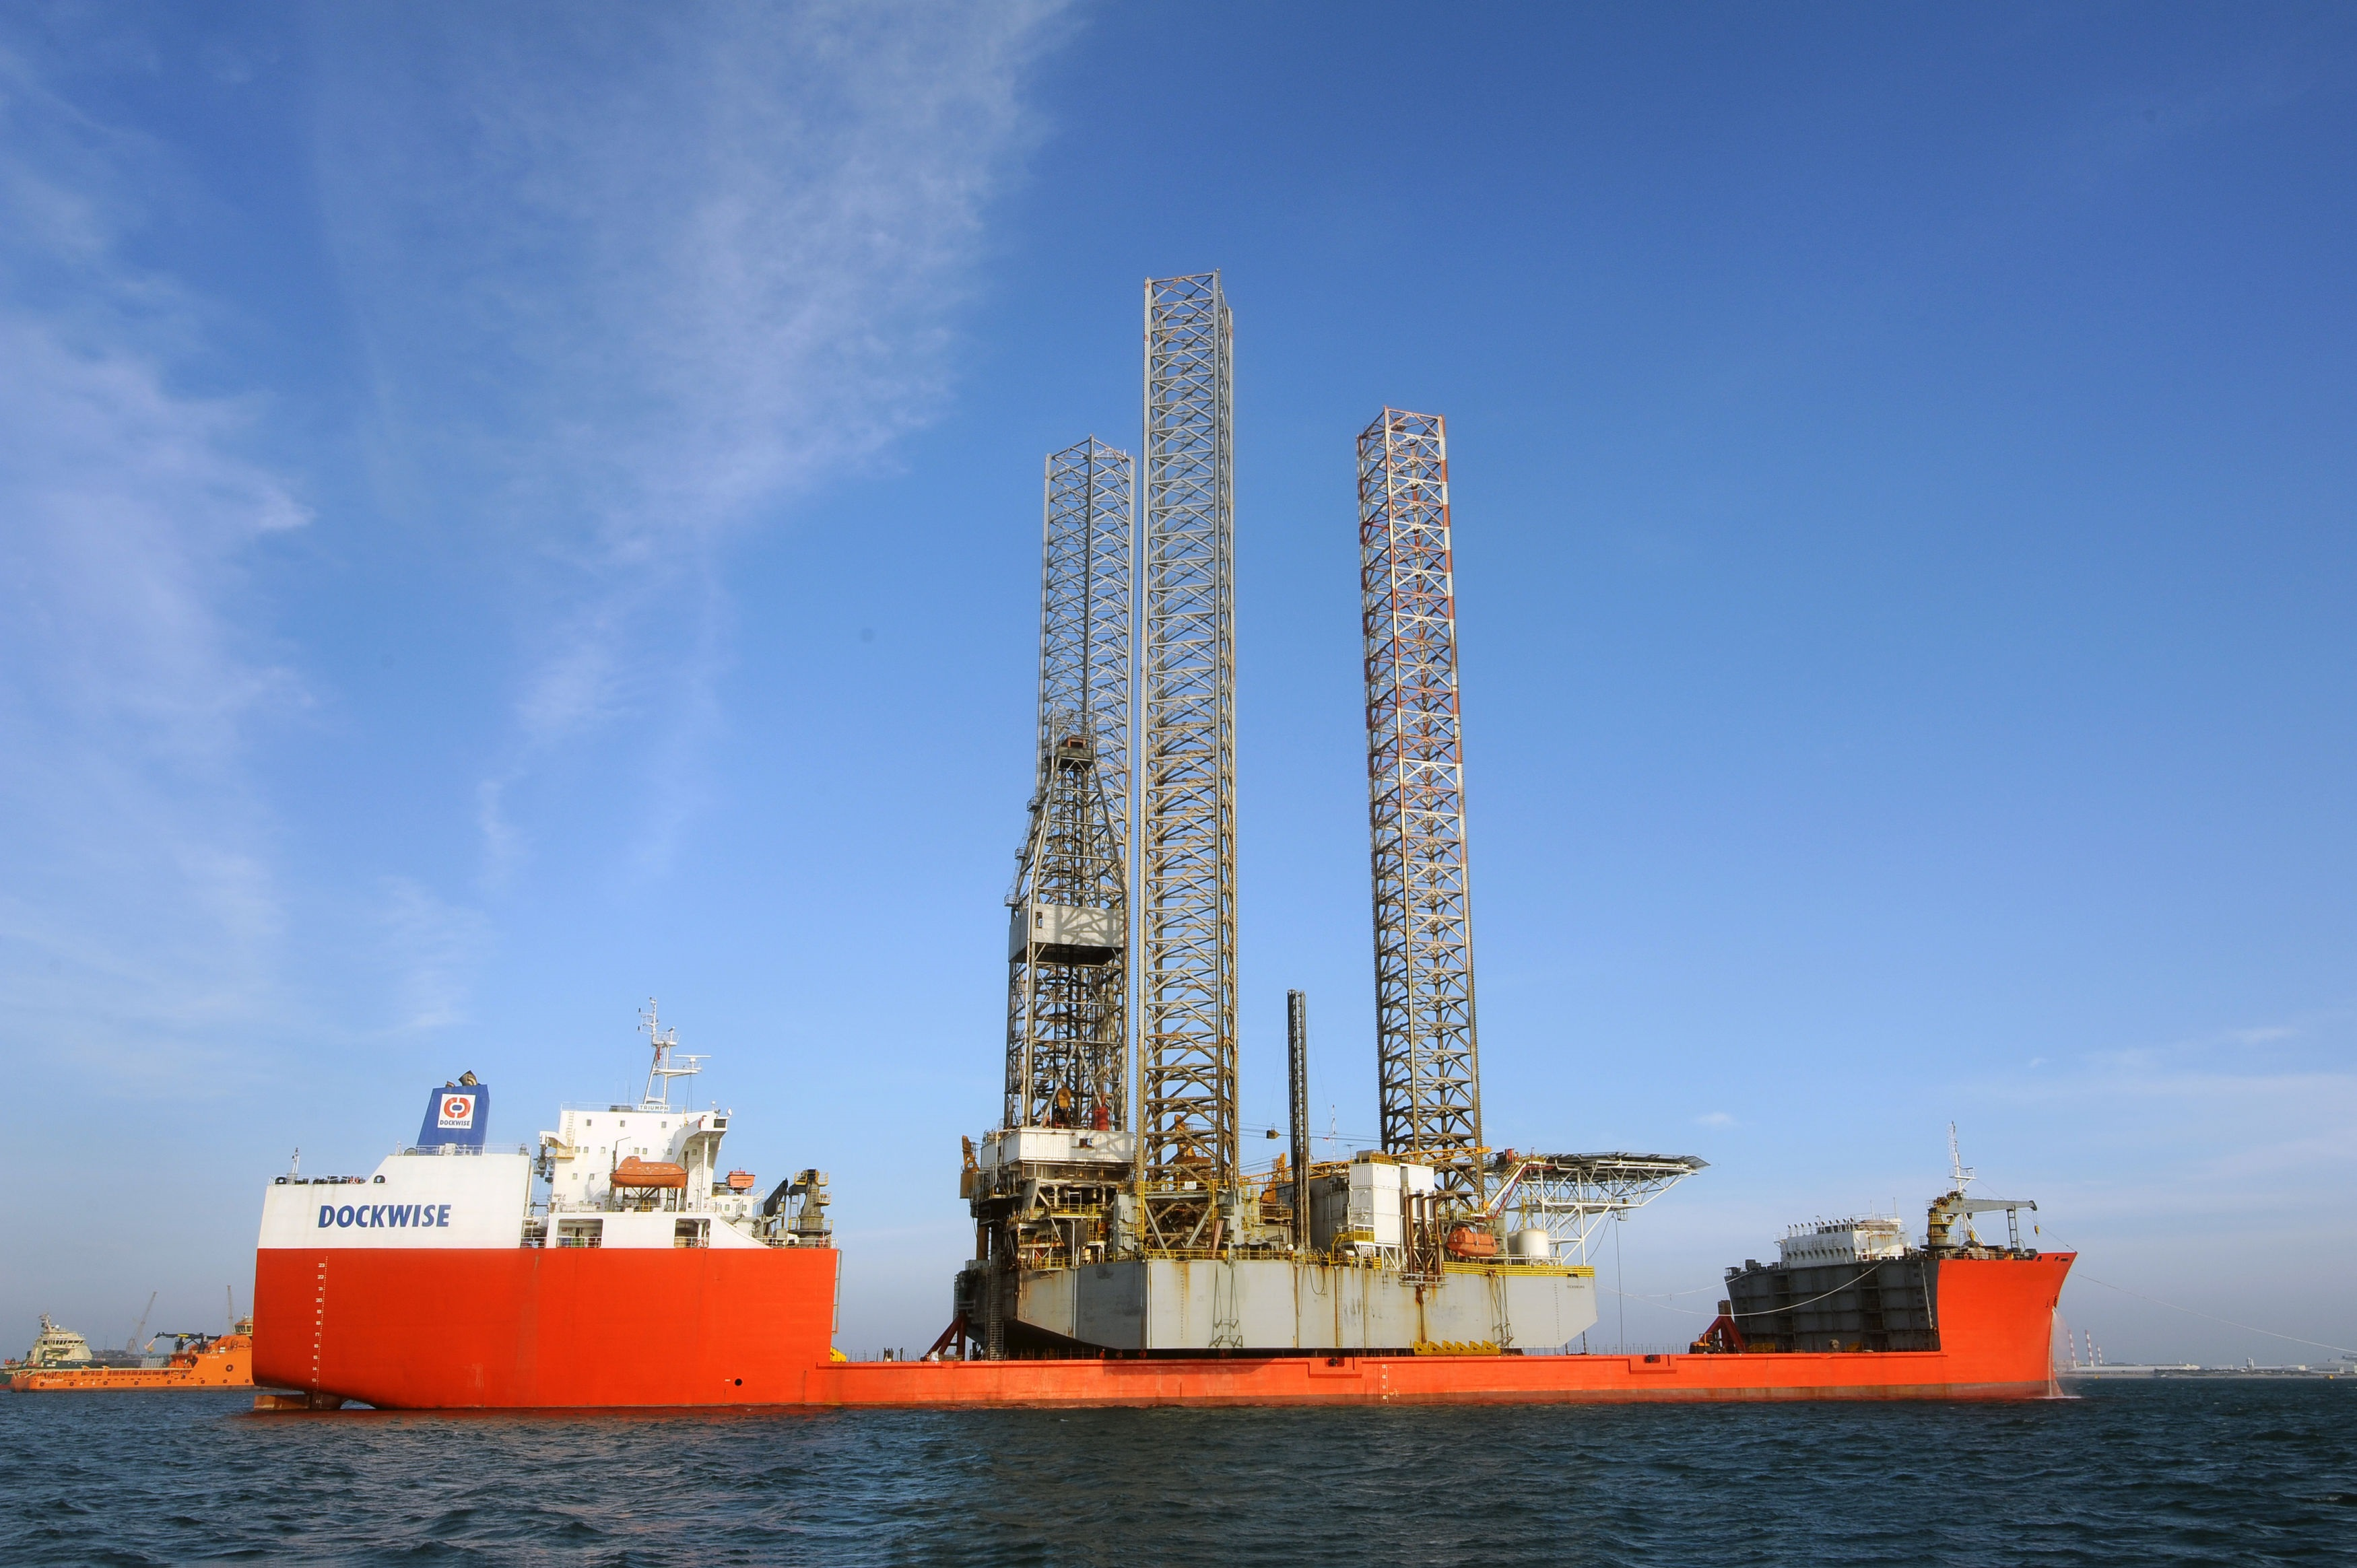 One of the closed stern Dockwise vessels that Boskalis is putting up for sale